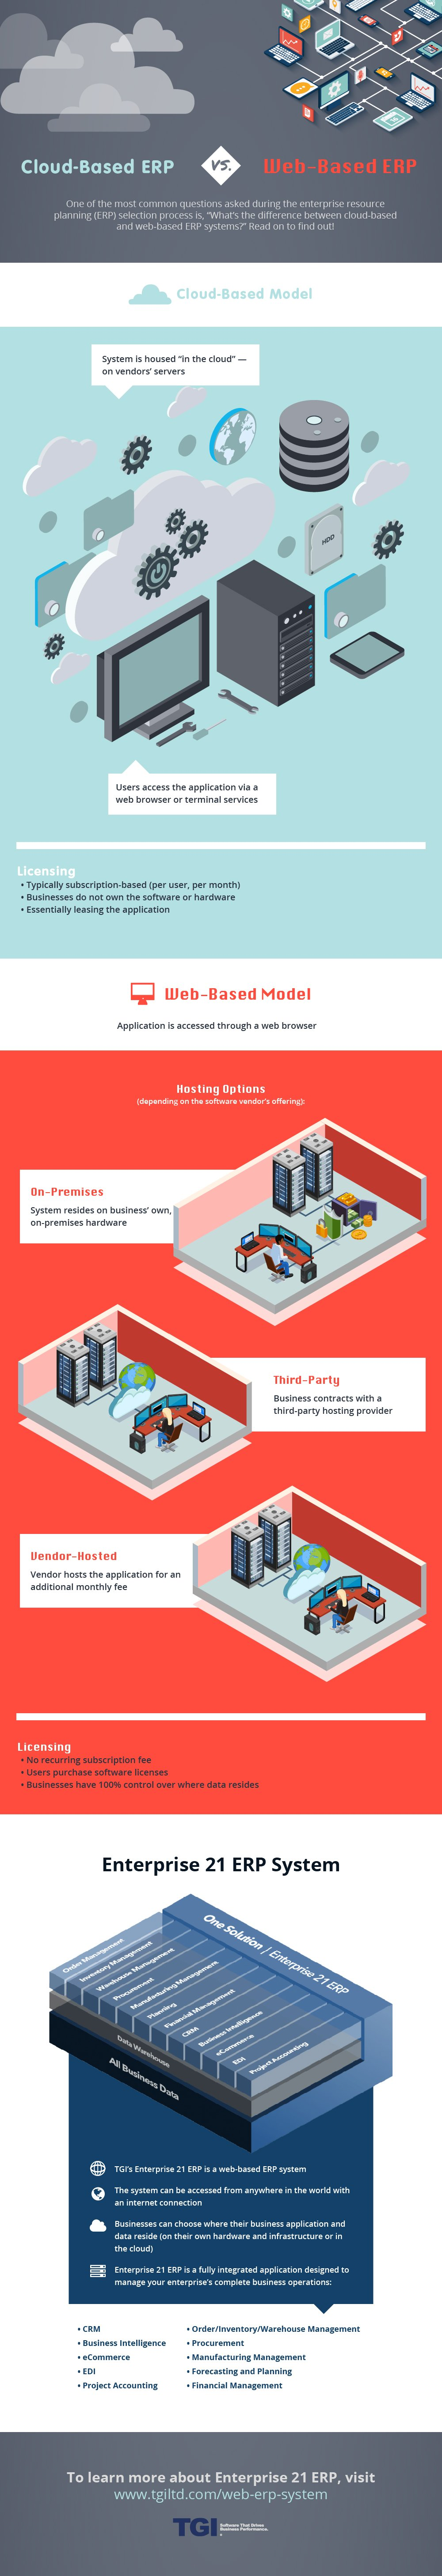 TGI Cloud vs Web Based ERP Infographic